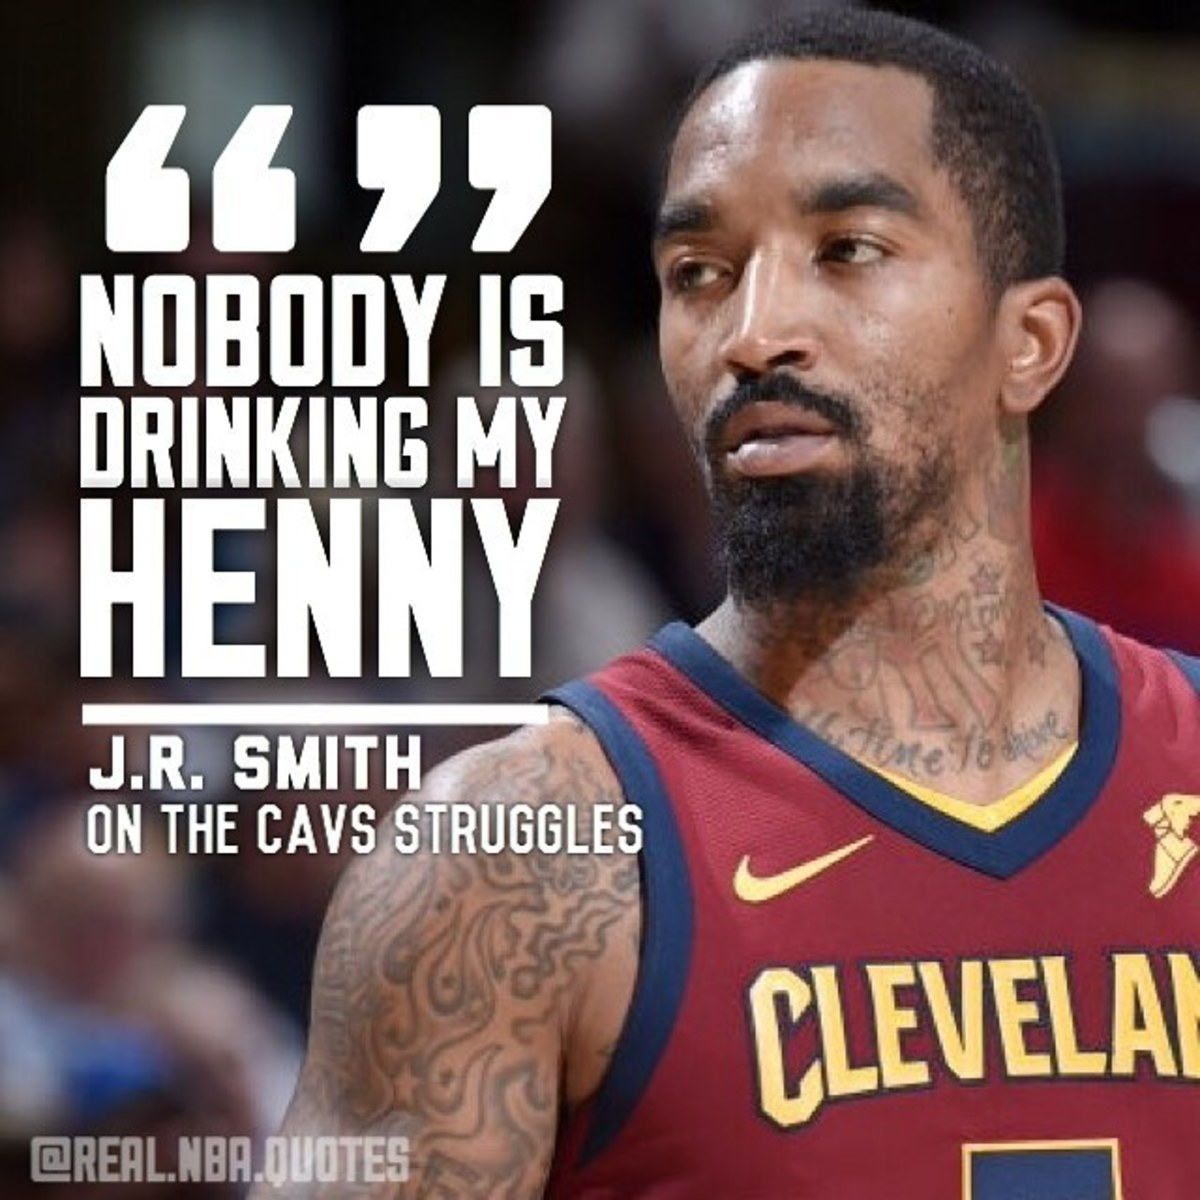 Funny Pictures Of Nba Players With Quotes: Top 10 Fake But Hilarious NBA Quotes